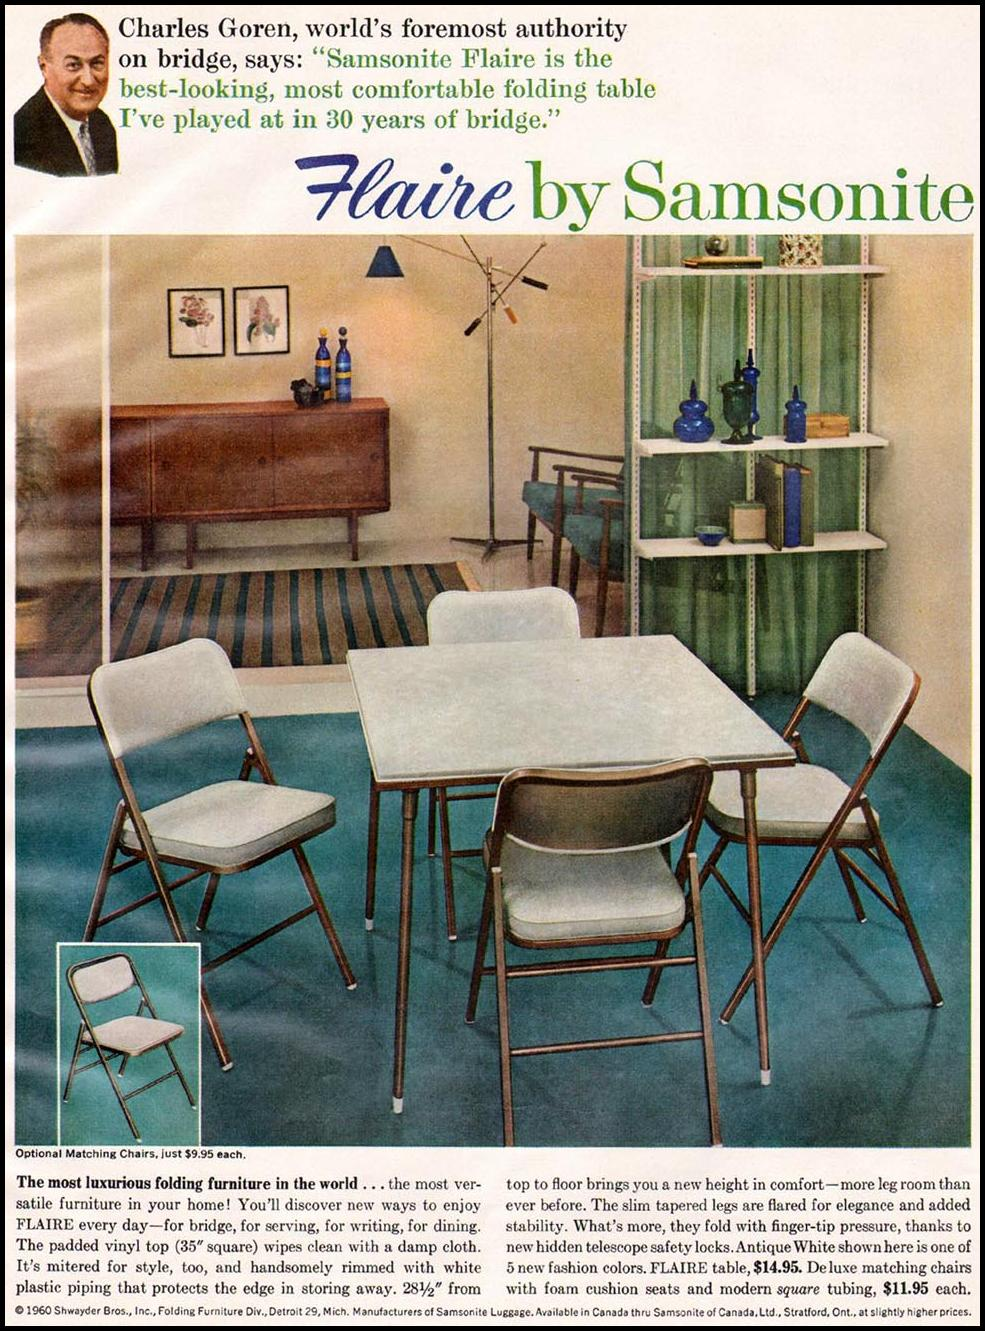 SAMSONITE FLAIRE FOLDING FURNITURE BETTER HOMES AND GARDENS 03/01/1960 p. 143